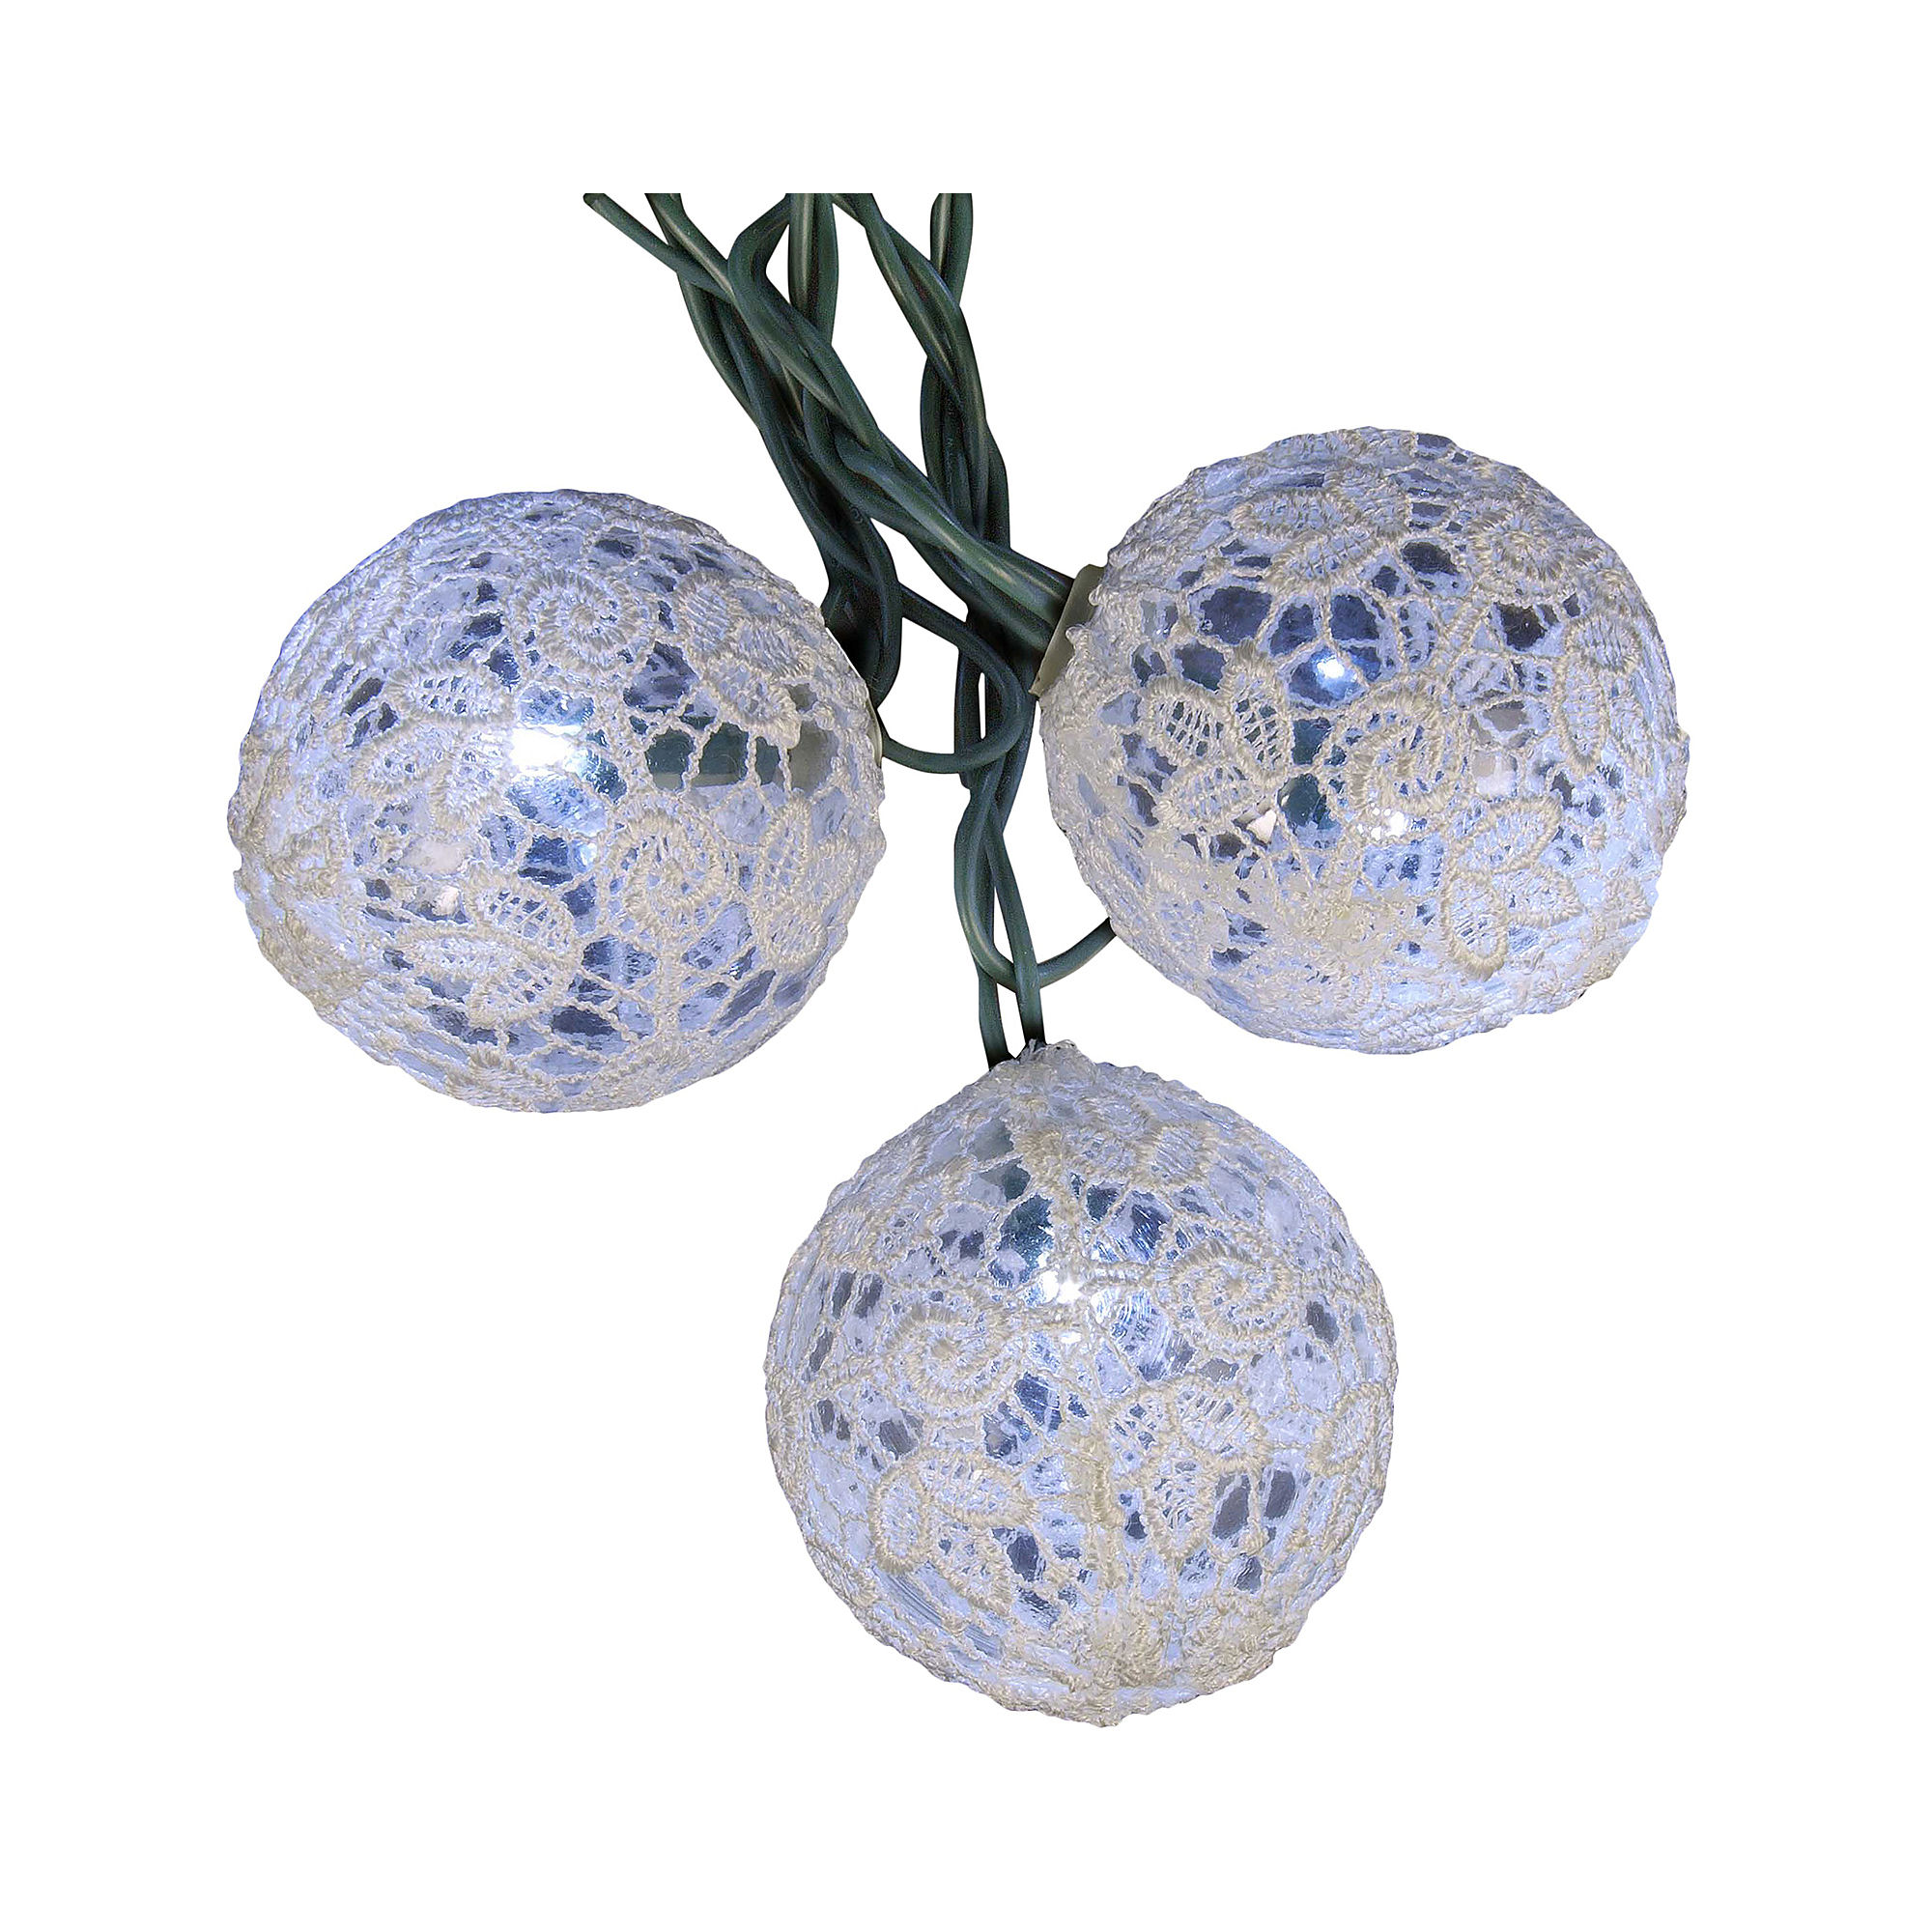 UPC 086131330650 product image for Kurt Adler UL 10-Light Winter White LED Lace Ball Light Set | upcitemdb.com